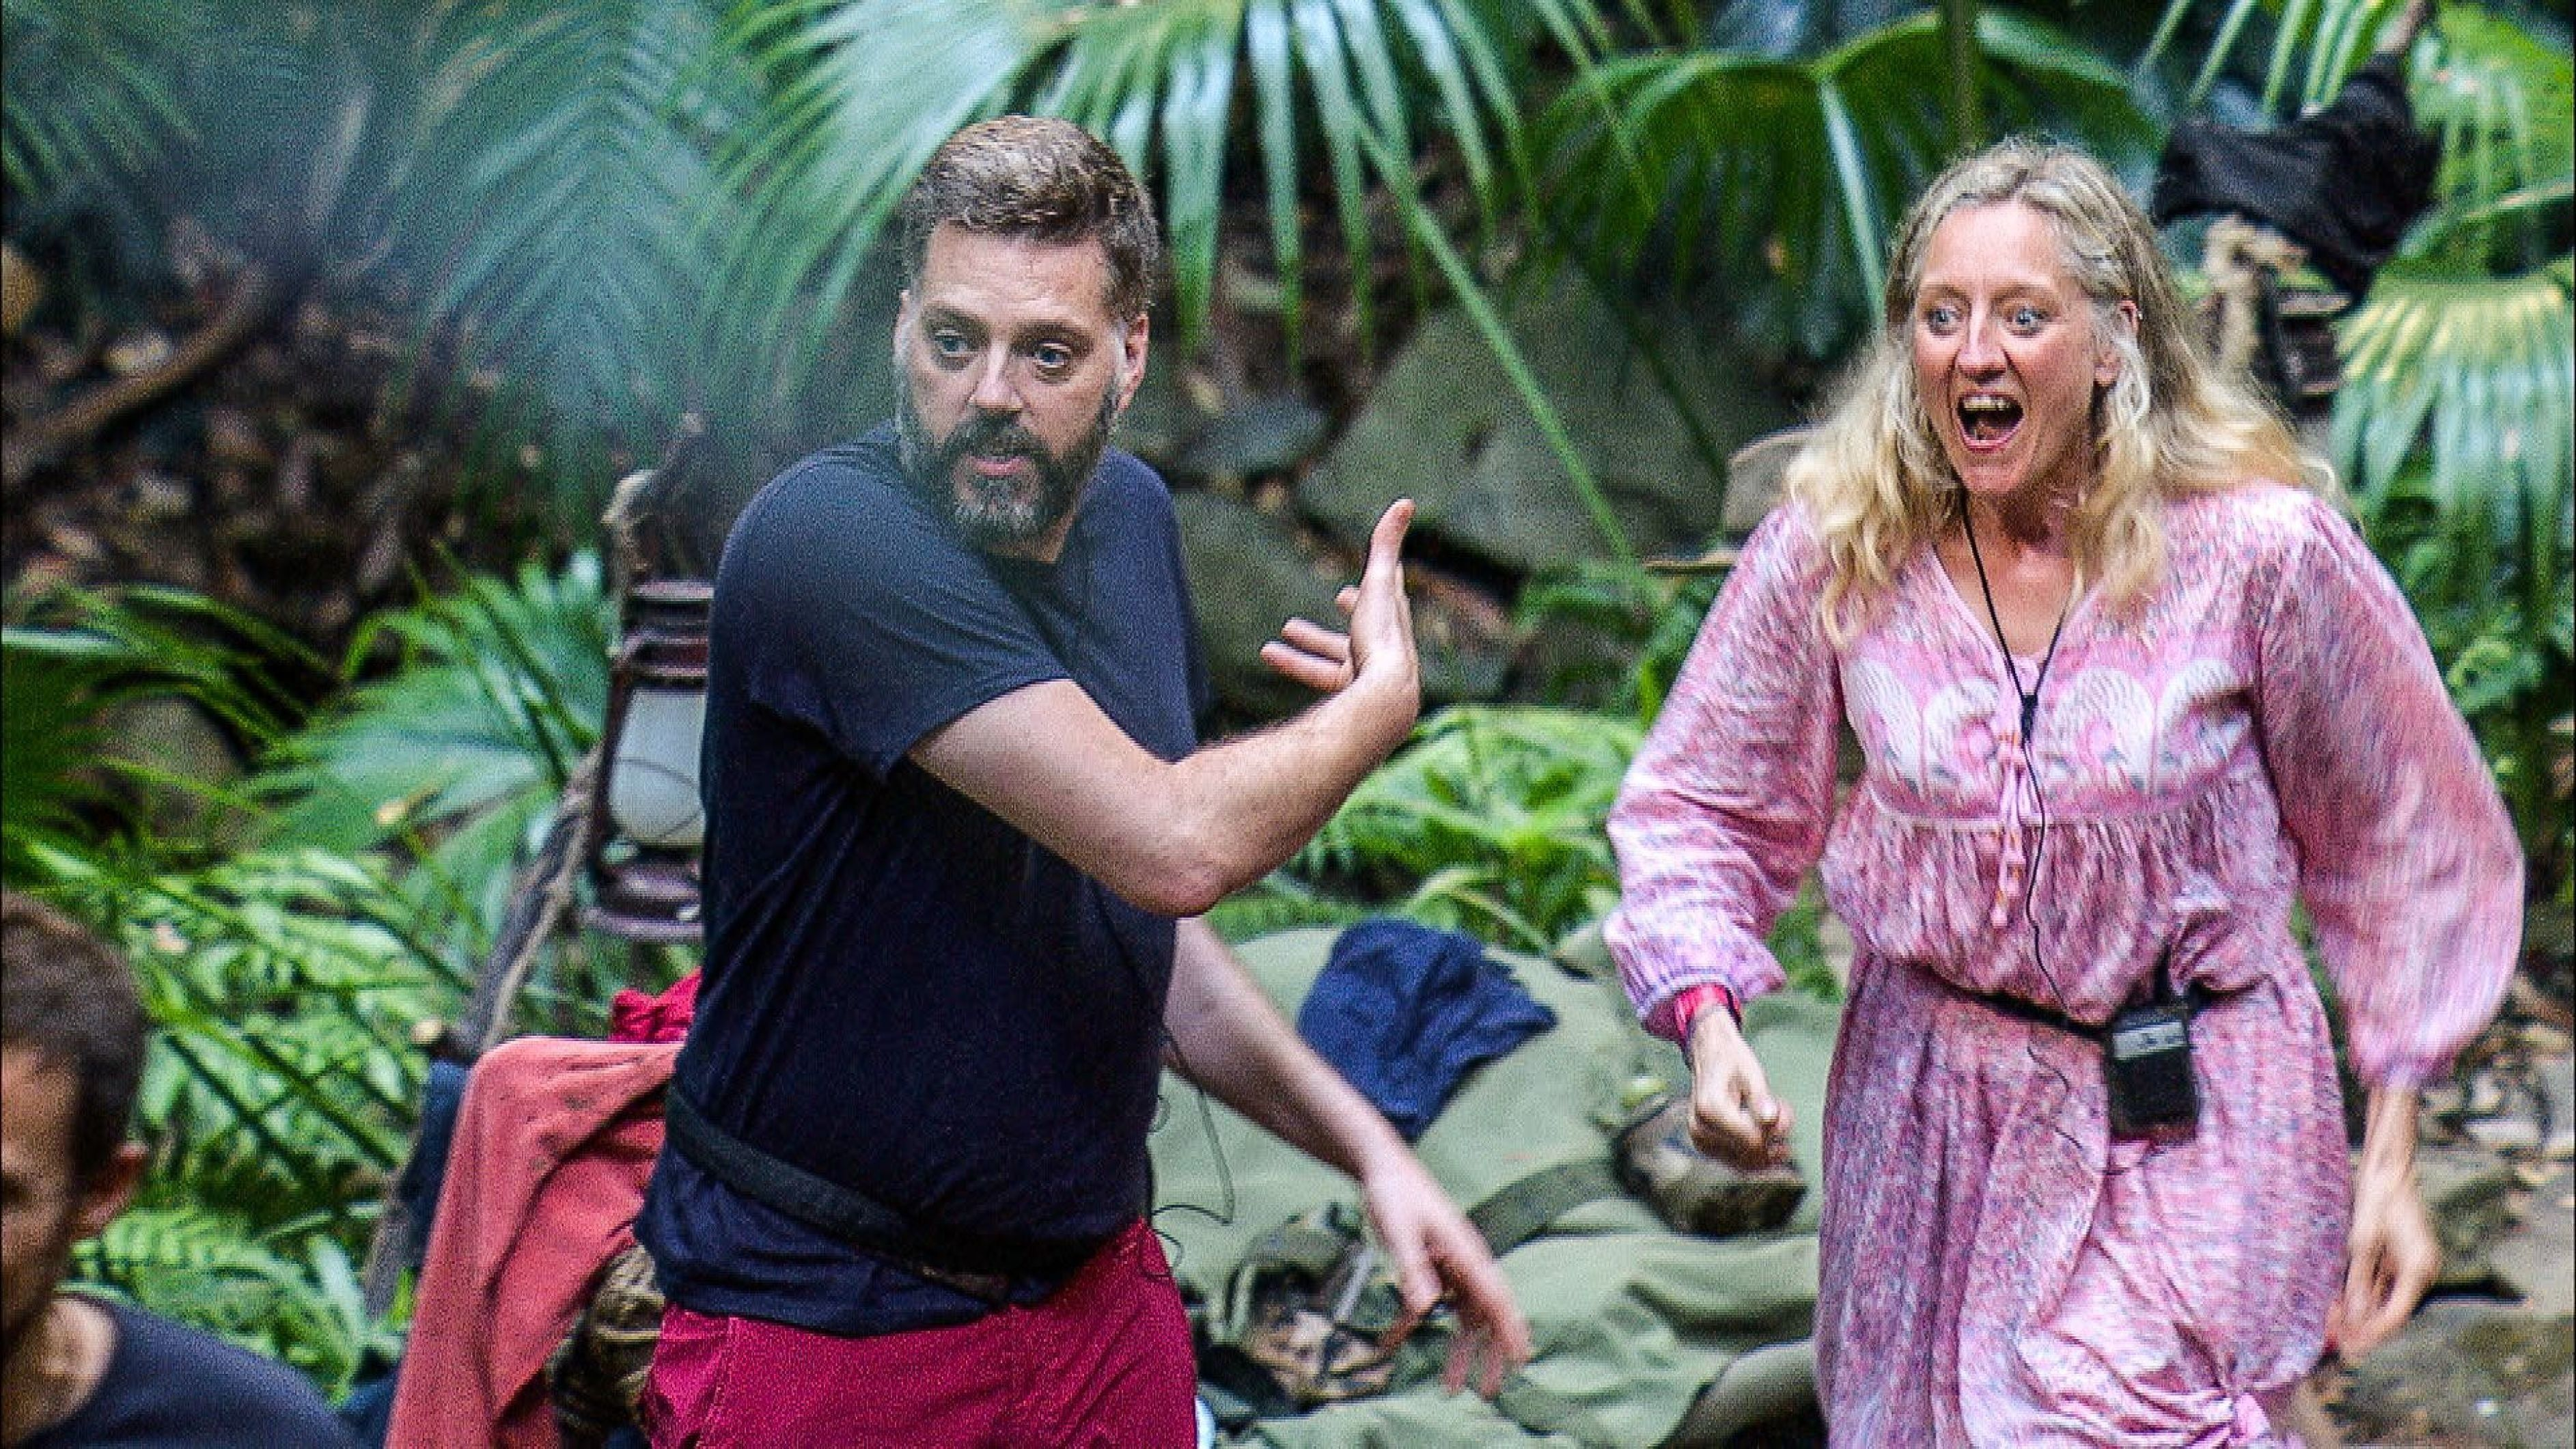 Iain Lee's Sister Hints At Behind-The-Scenes Bullying As She Wades Into 'I'm A Celebrity'